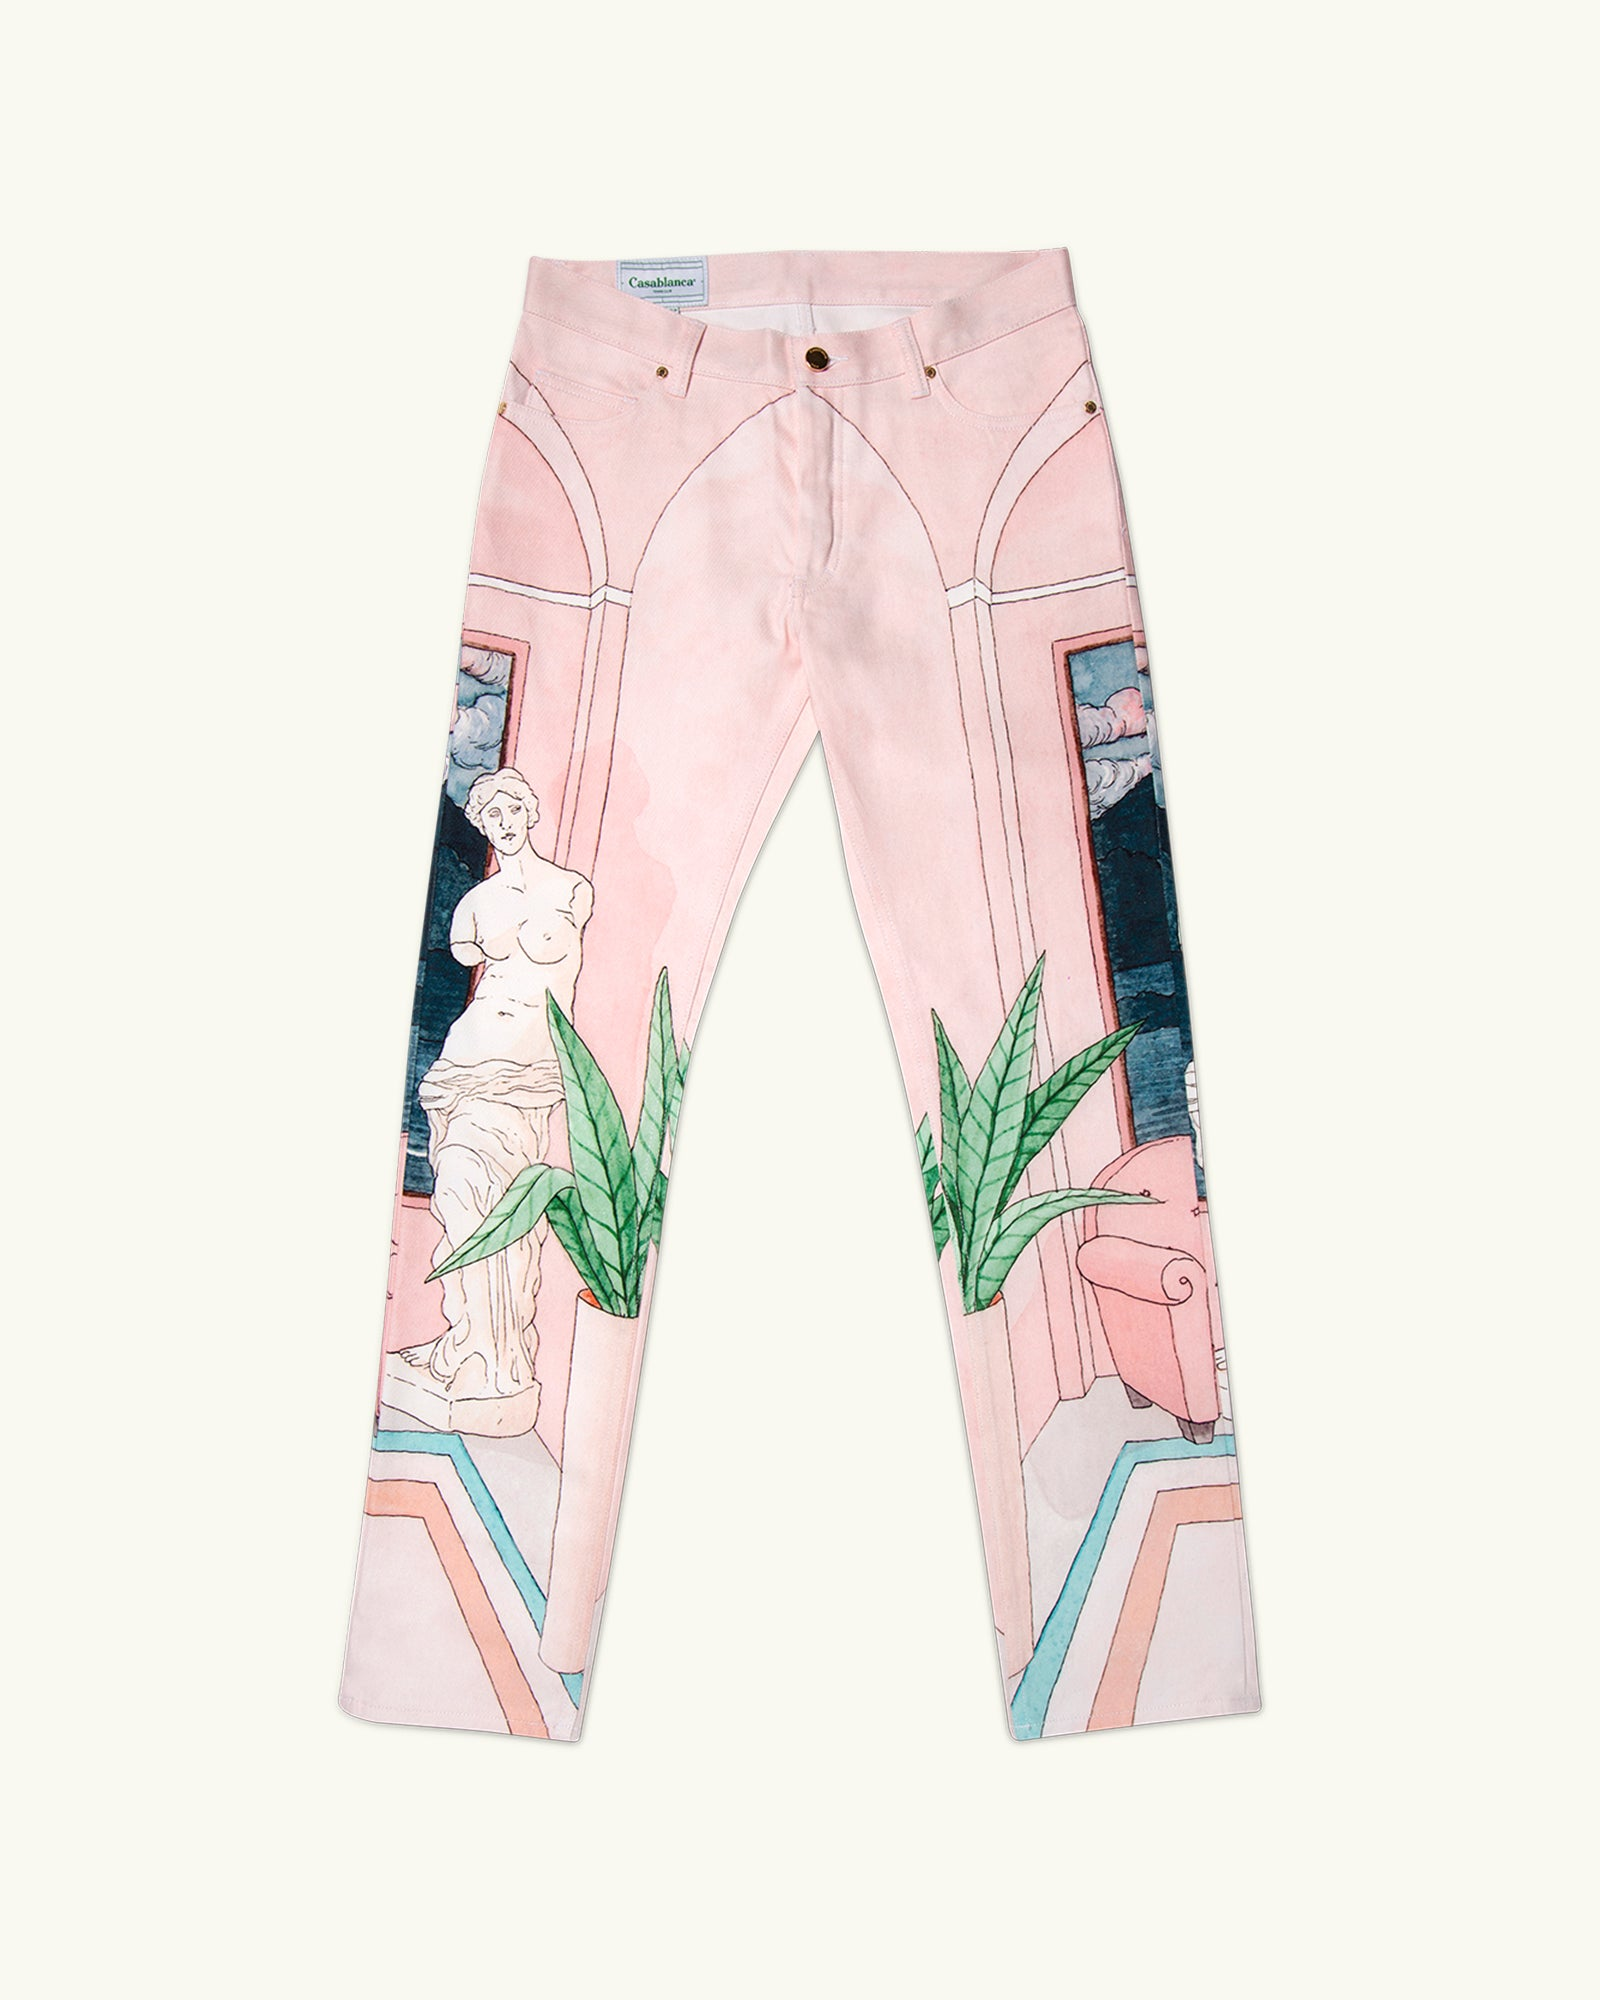 Chambre Printed Denim Jeans